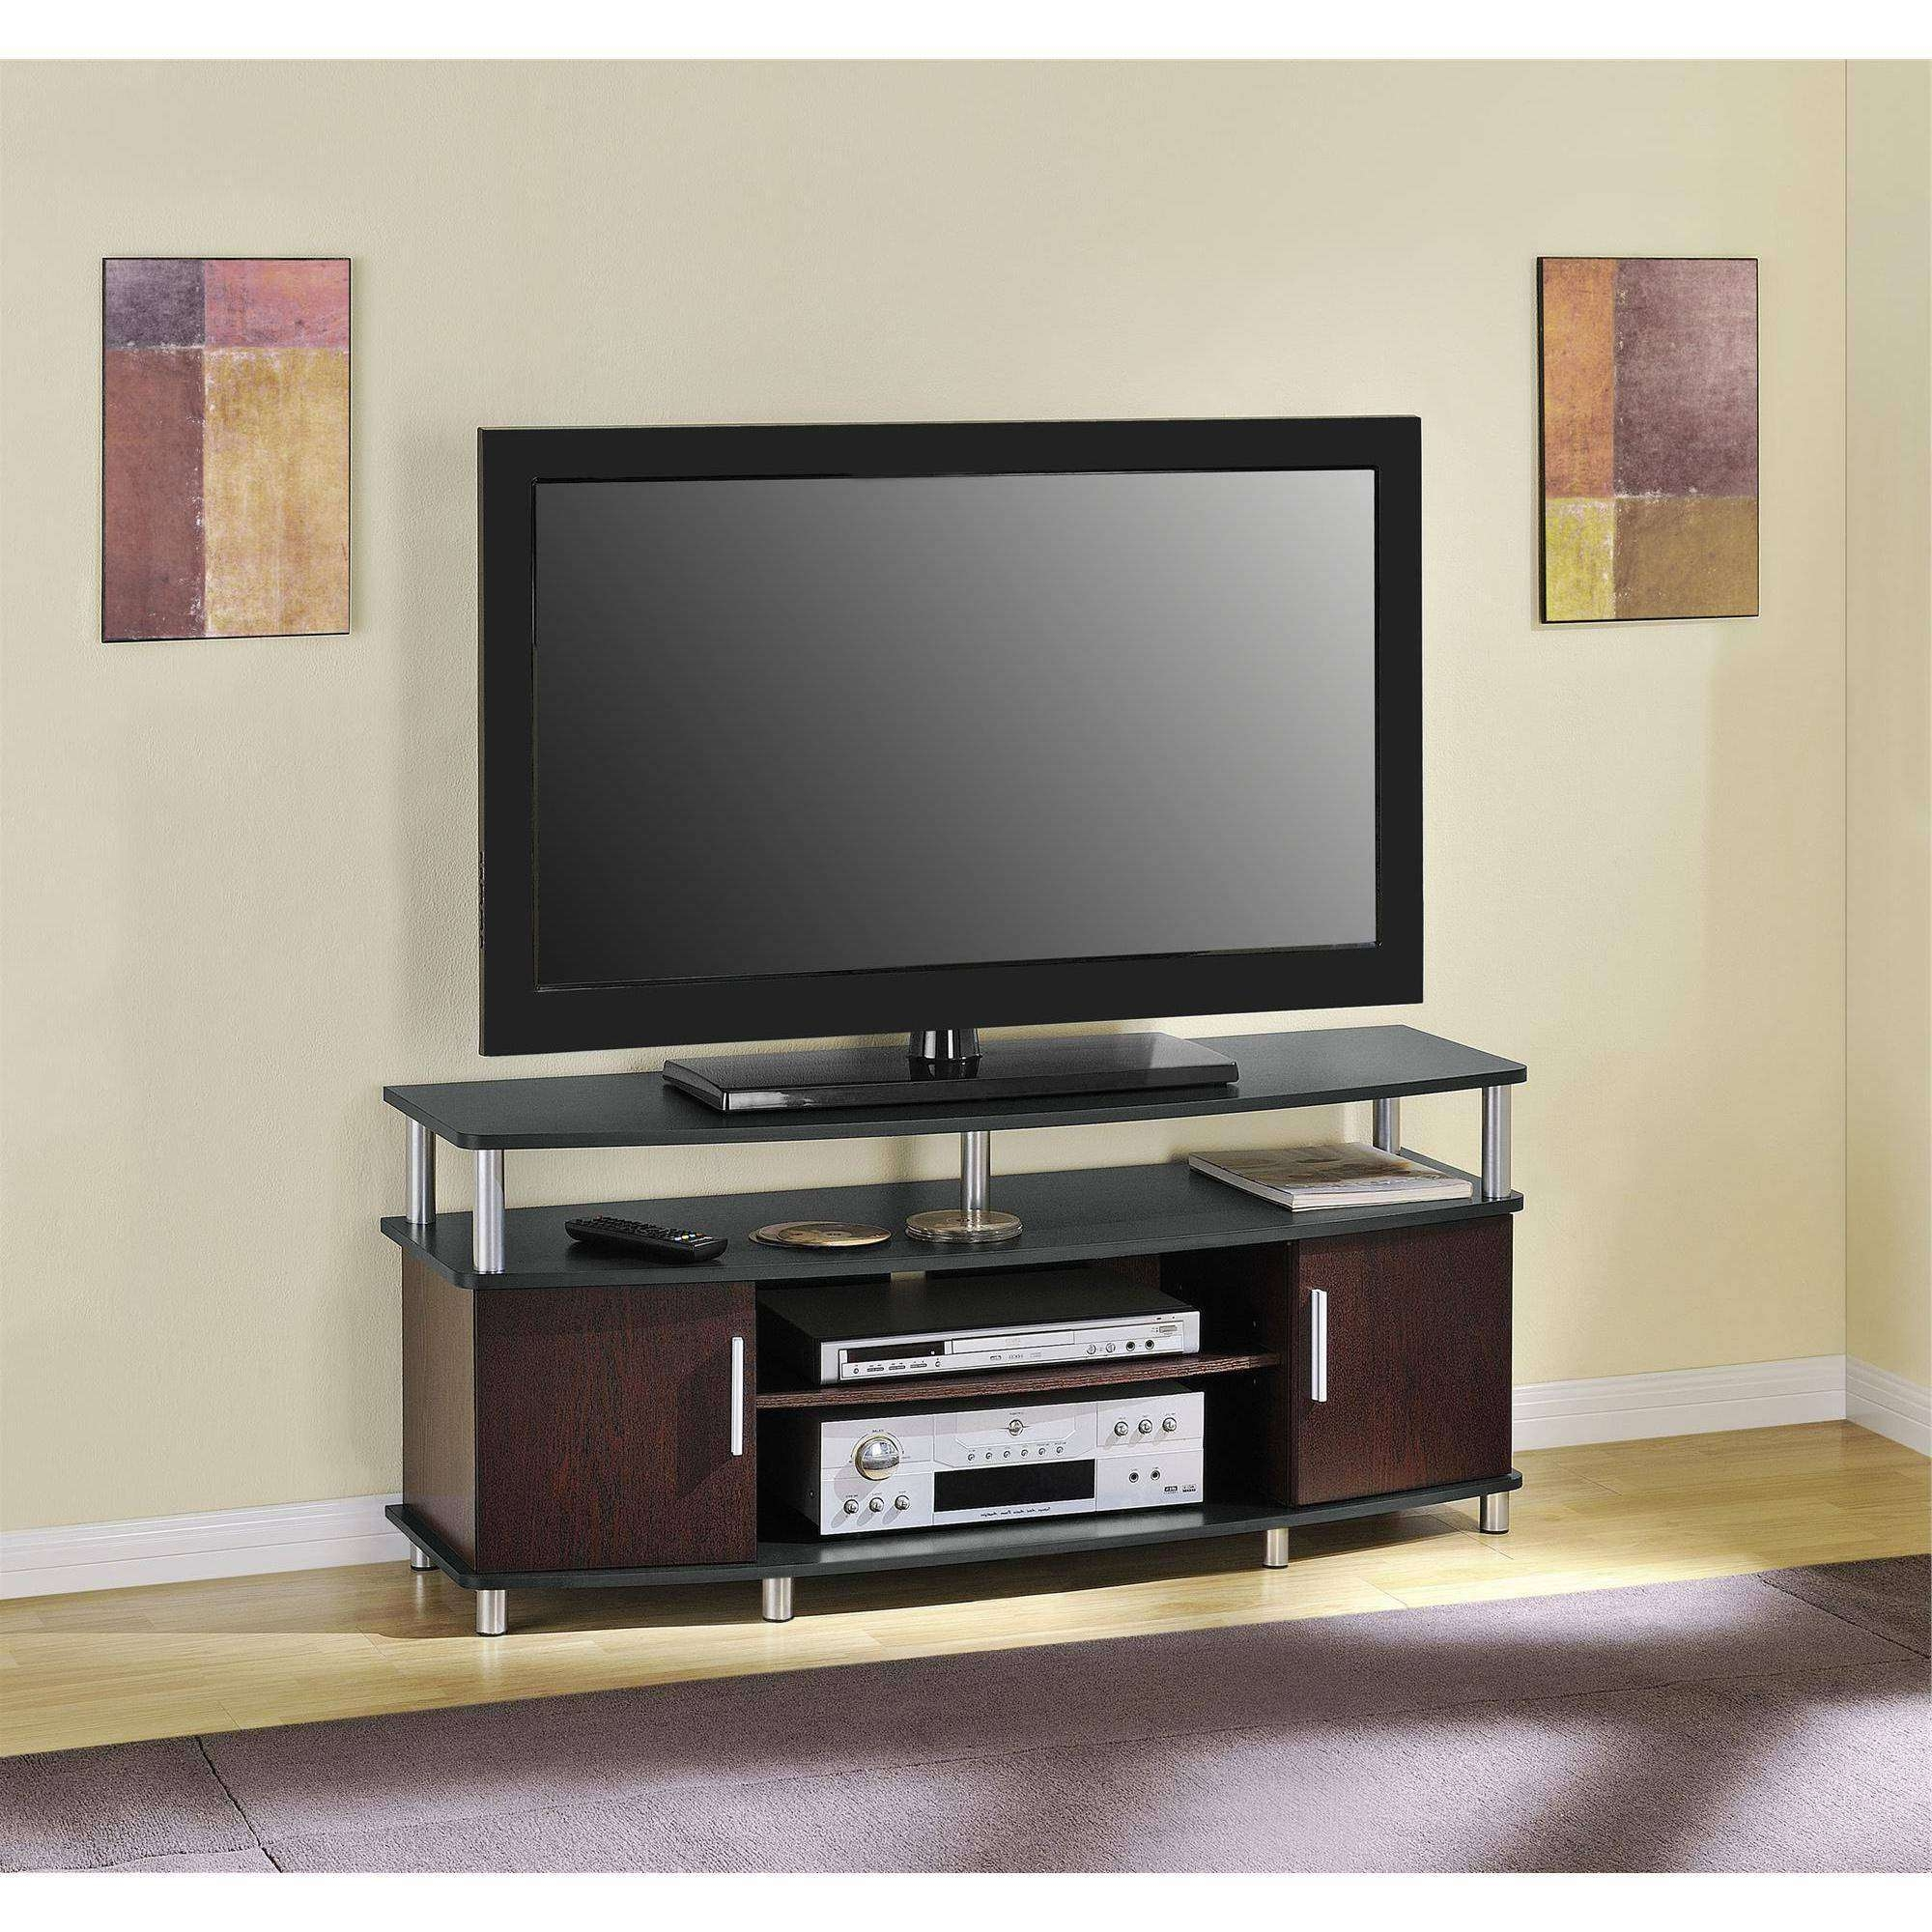 Perfect Corner Tv Stands For 50 Inch Tv 19 For Simple Home Within 50 Inch Corner Tv Cabinets (View 11 of 20)